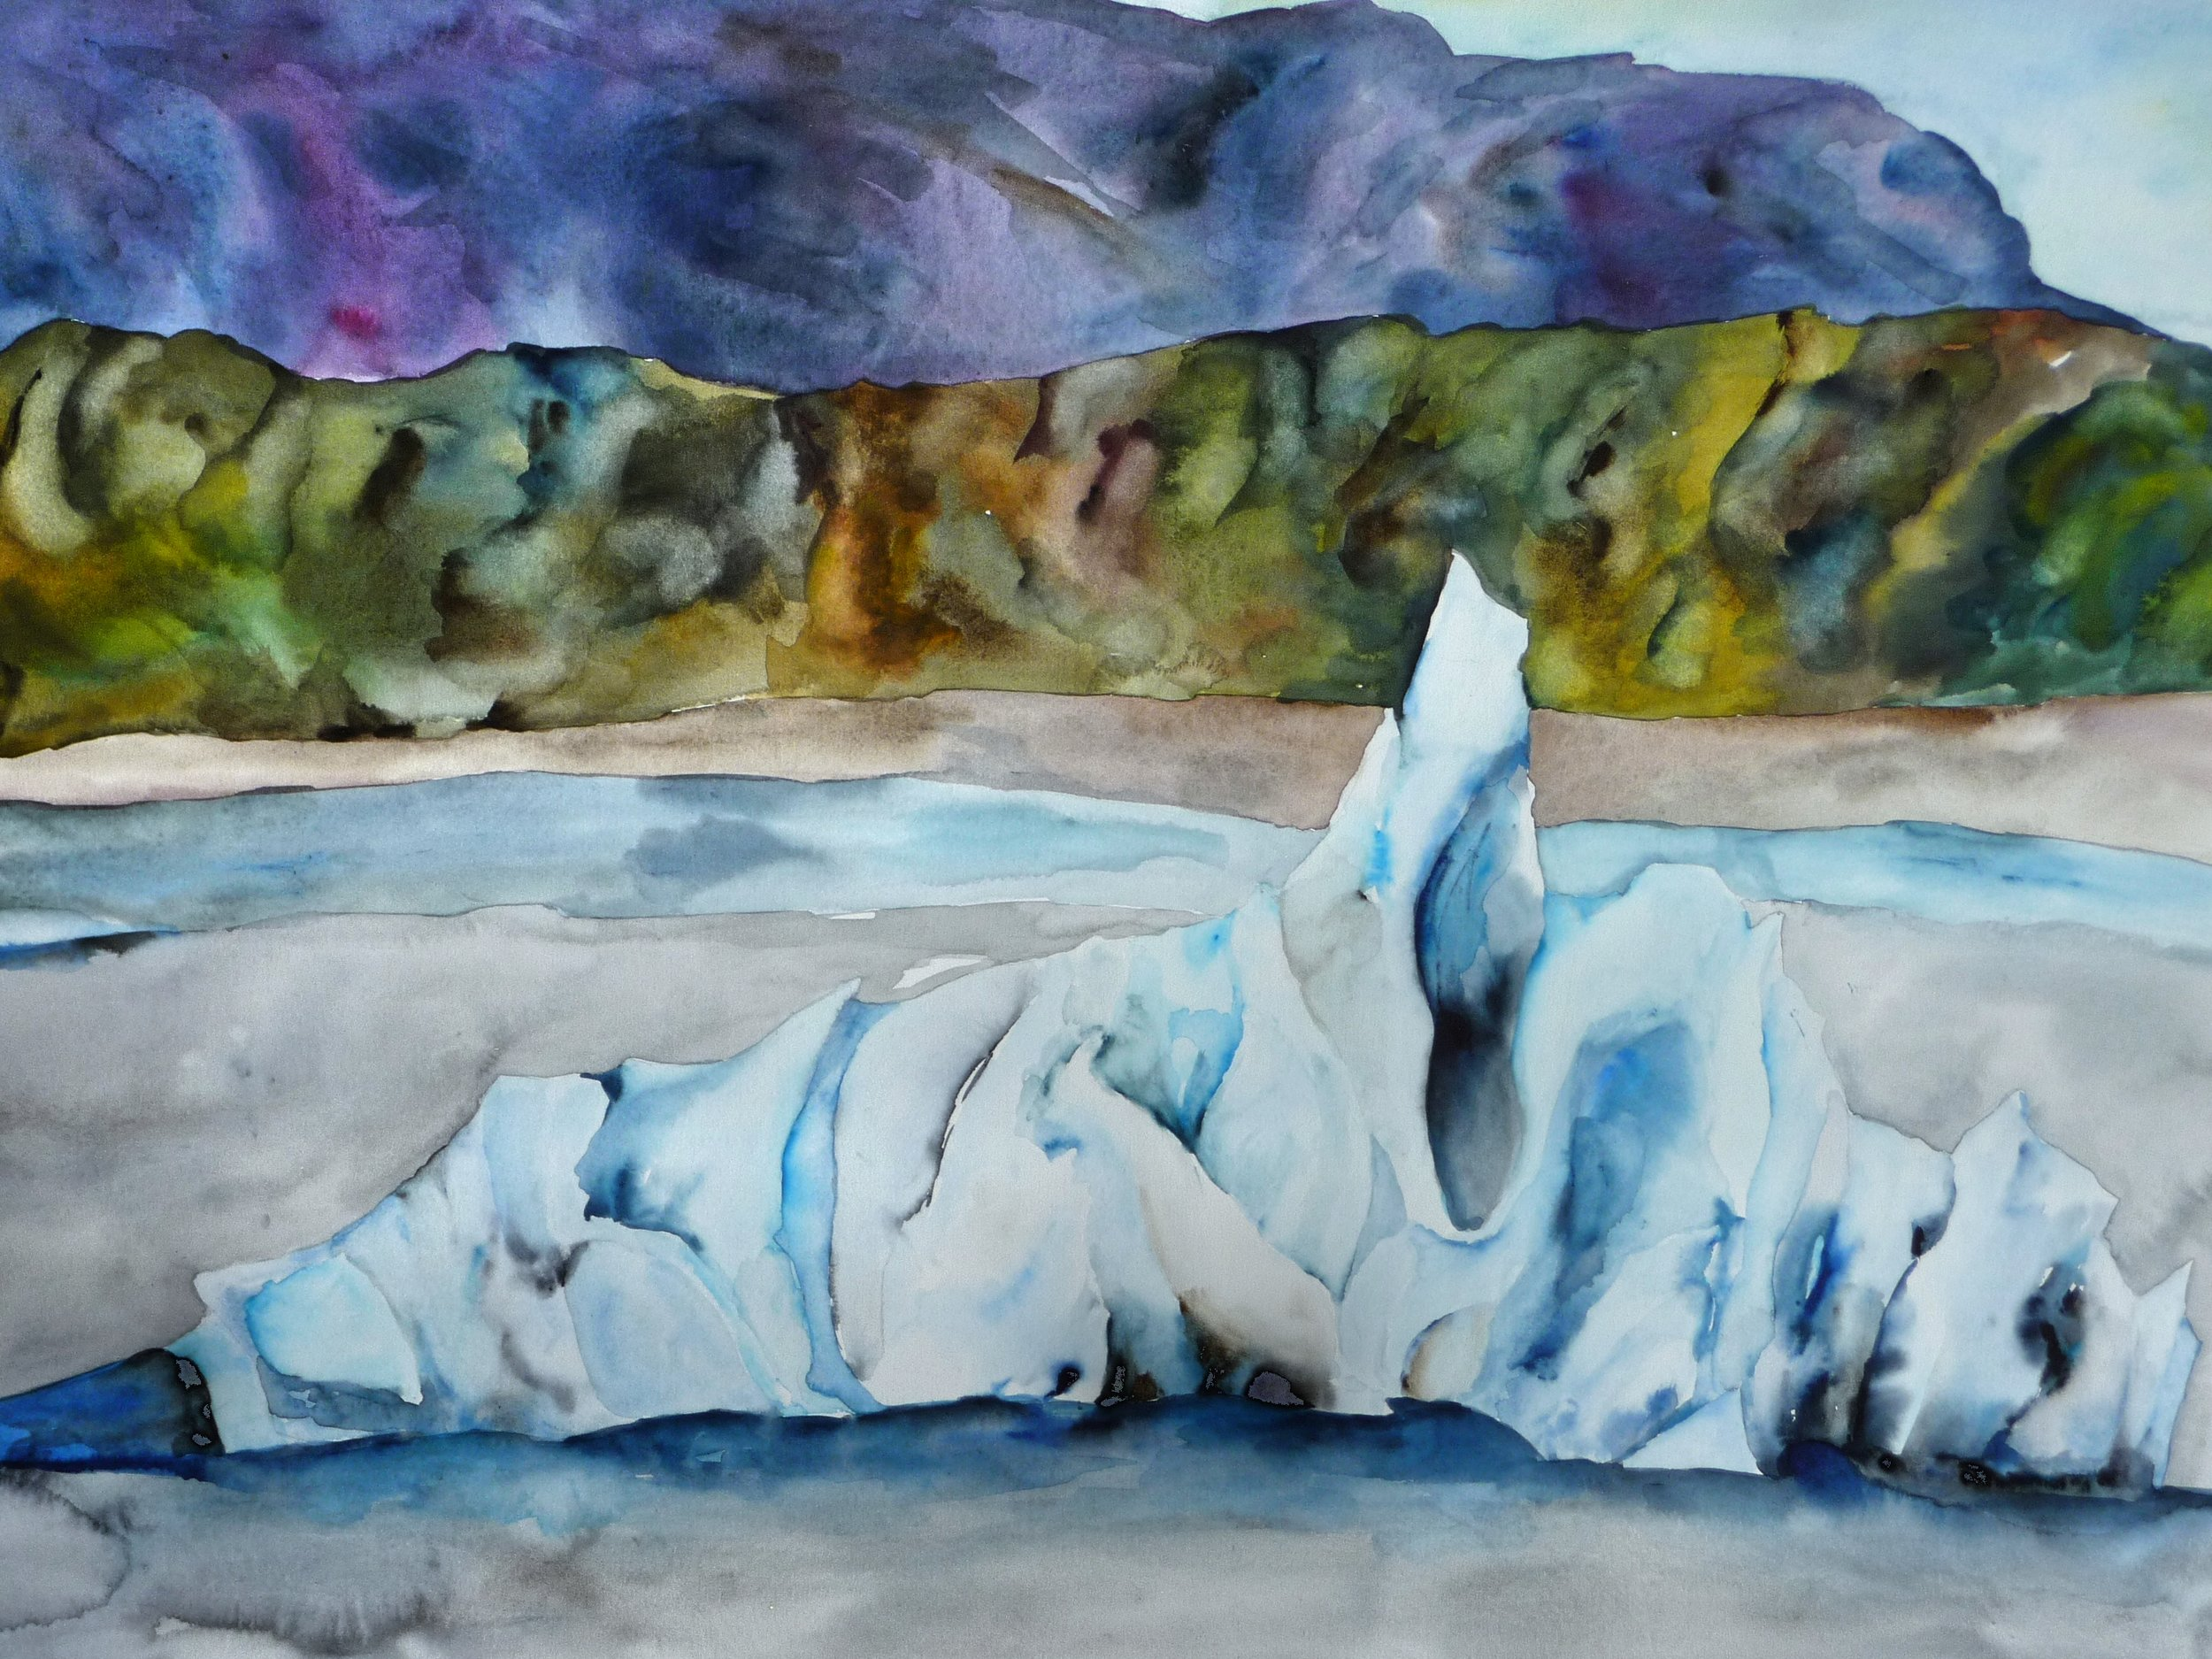 Iceberg in Iceland,watercolor on paper, framed, 22x30, $1150